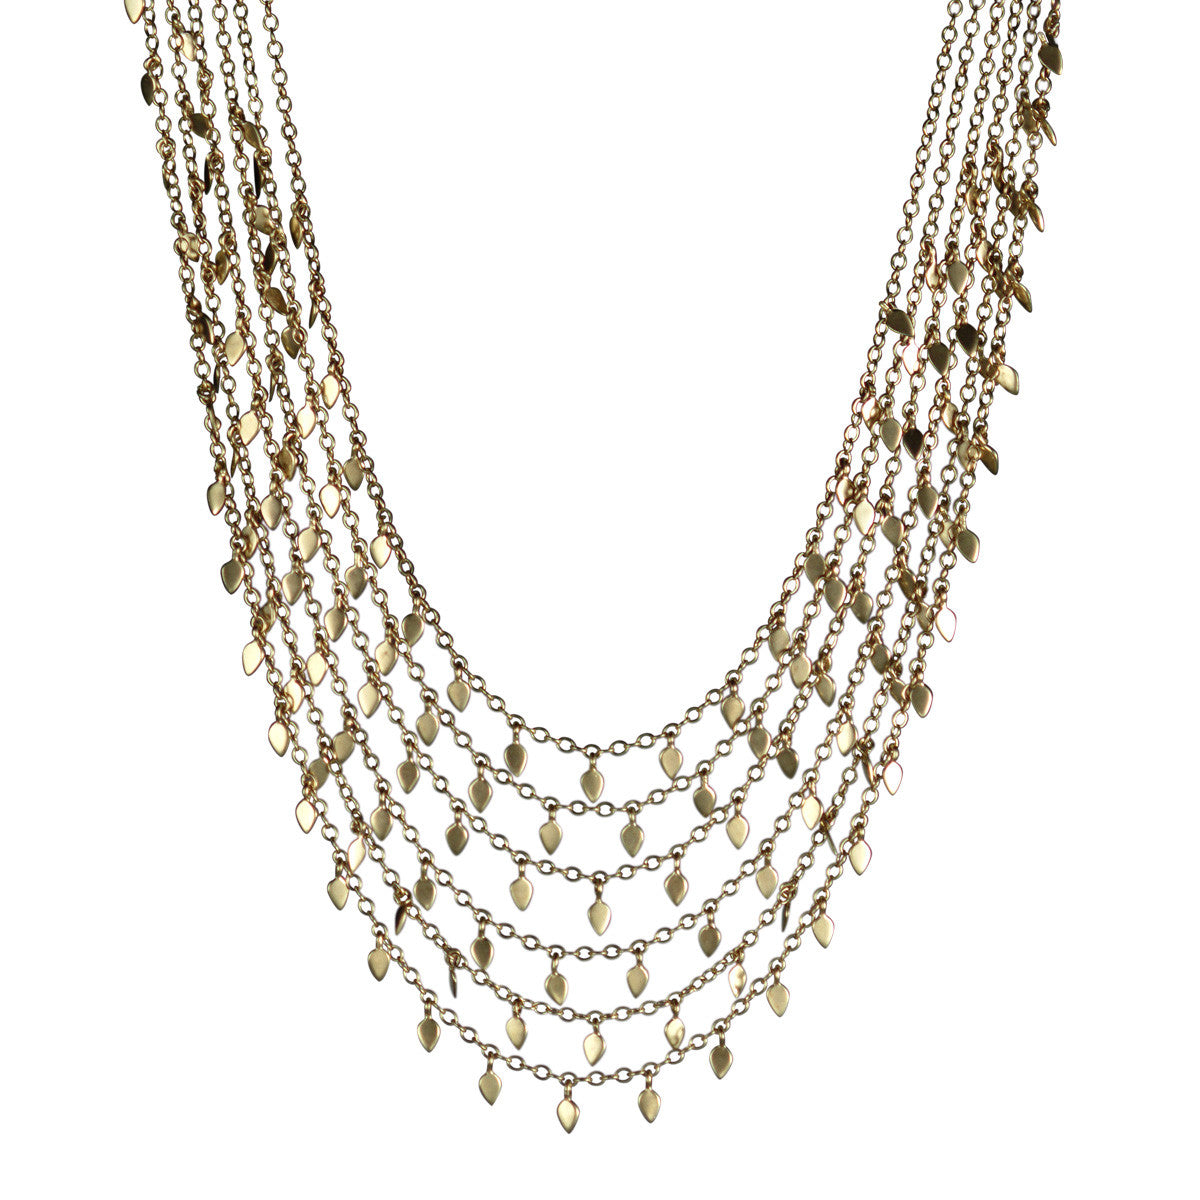 18K Gold Six Tier Petal Chain